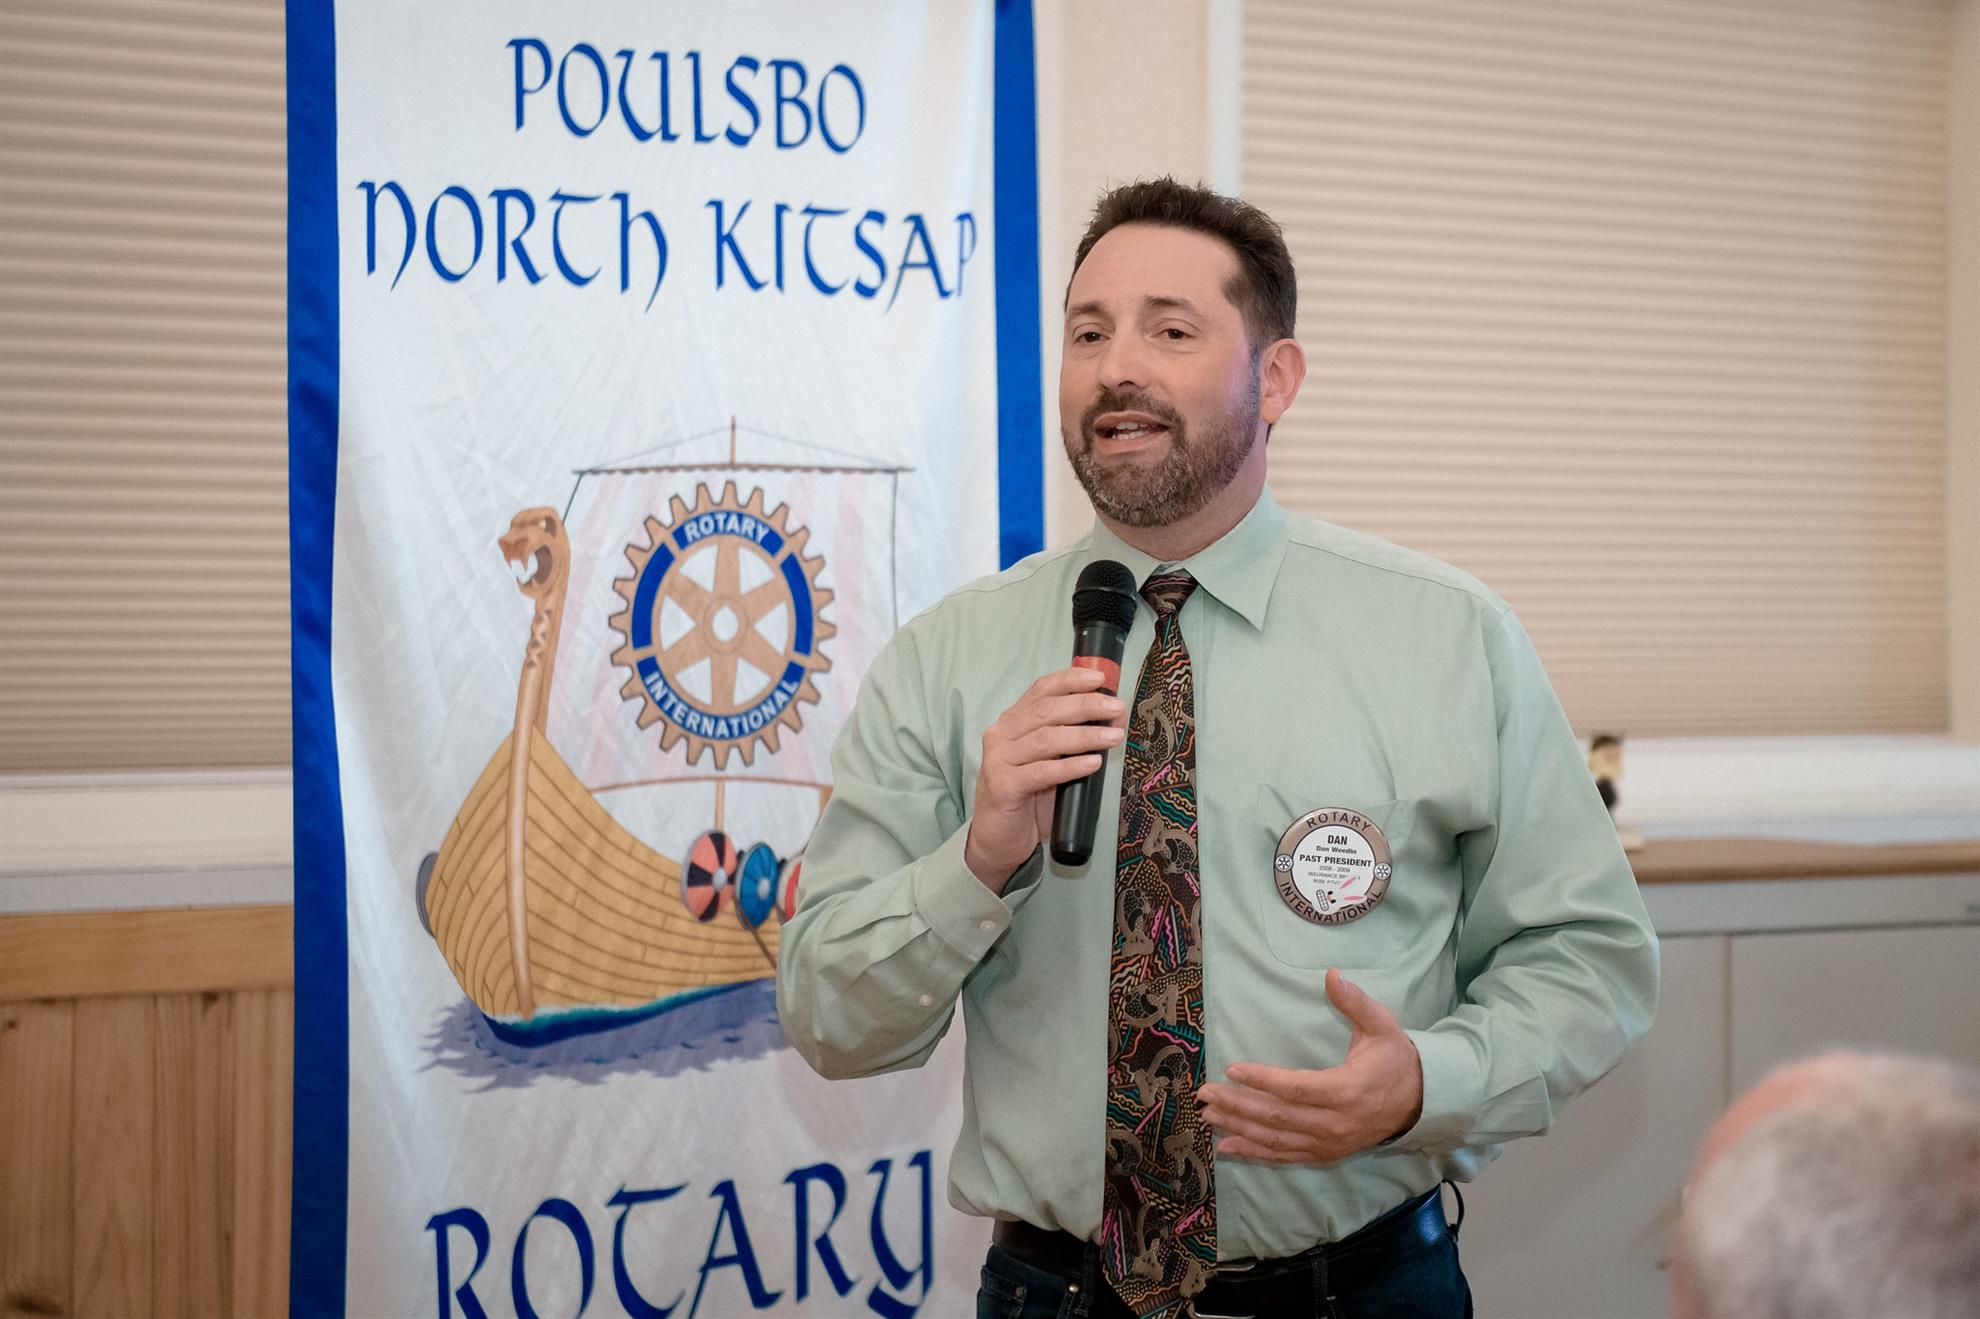 Stories | Rotary Club of Poulsbo-North Kitsap